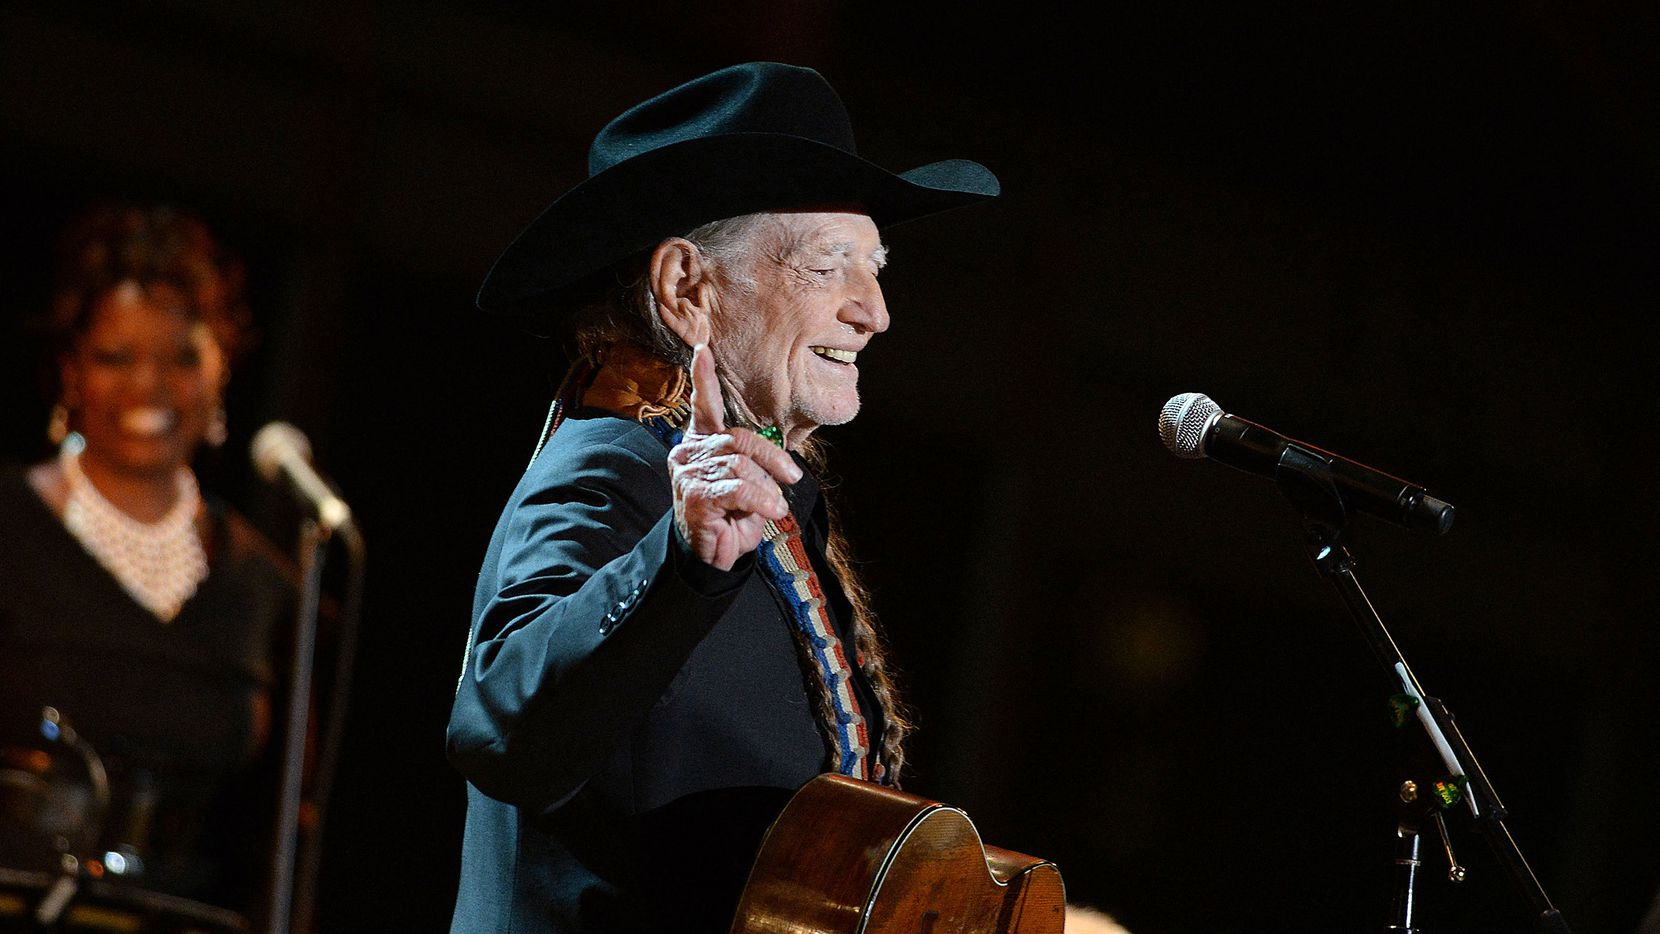 Singer Willie Nelson performs at A Salute to the Troops: In Performance at the White House concert on the South Lawn Nov. 6, 2014 in Washington, D.C.